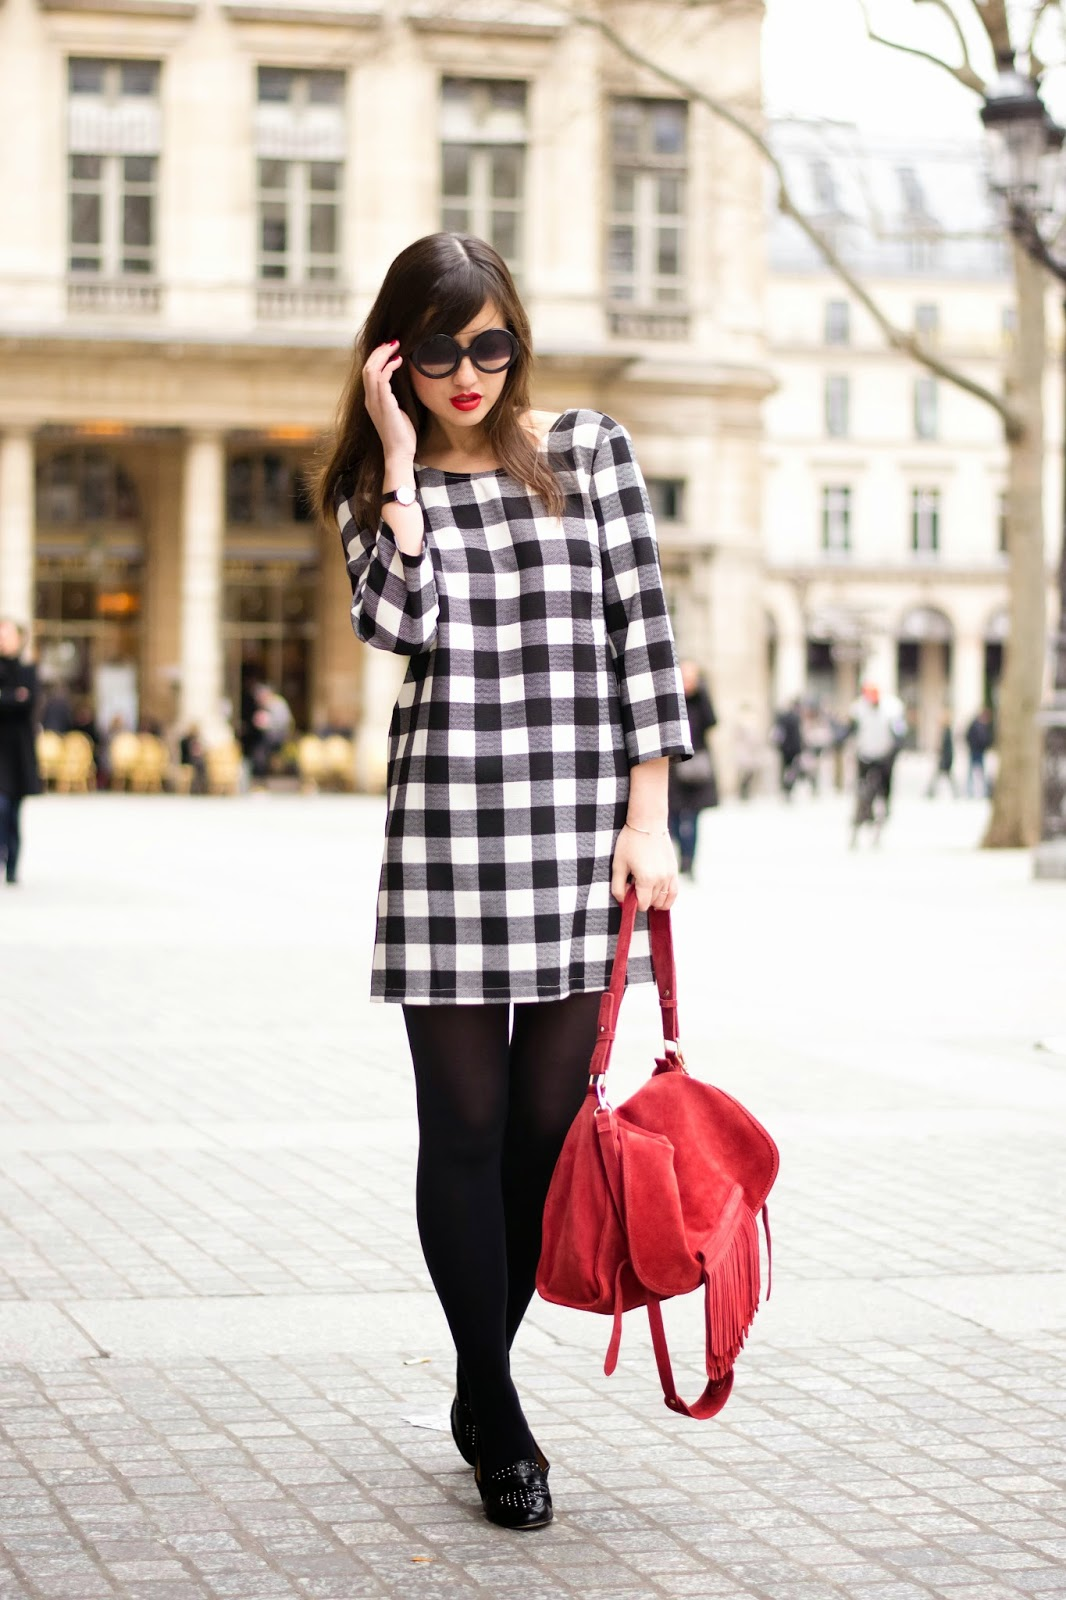 Womenswear blogger